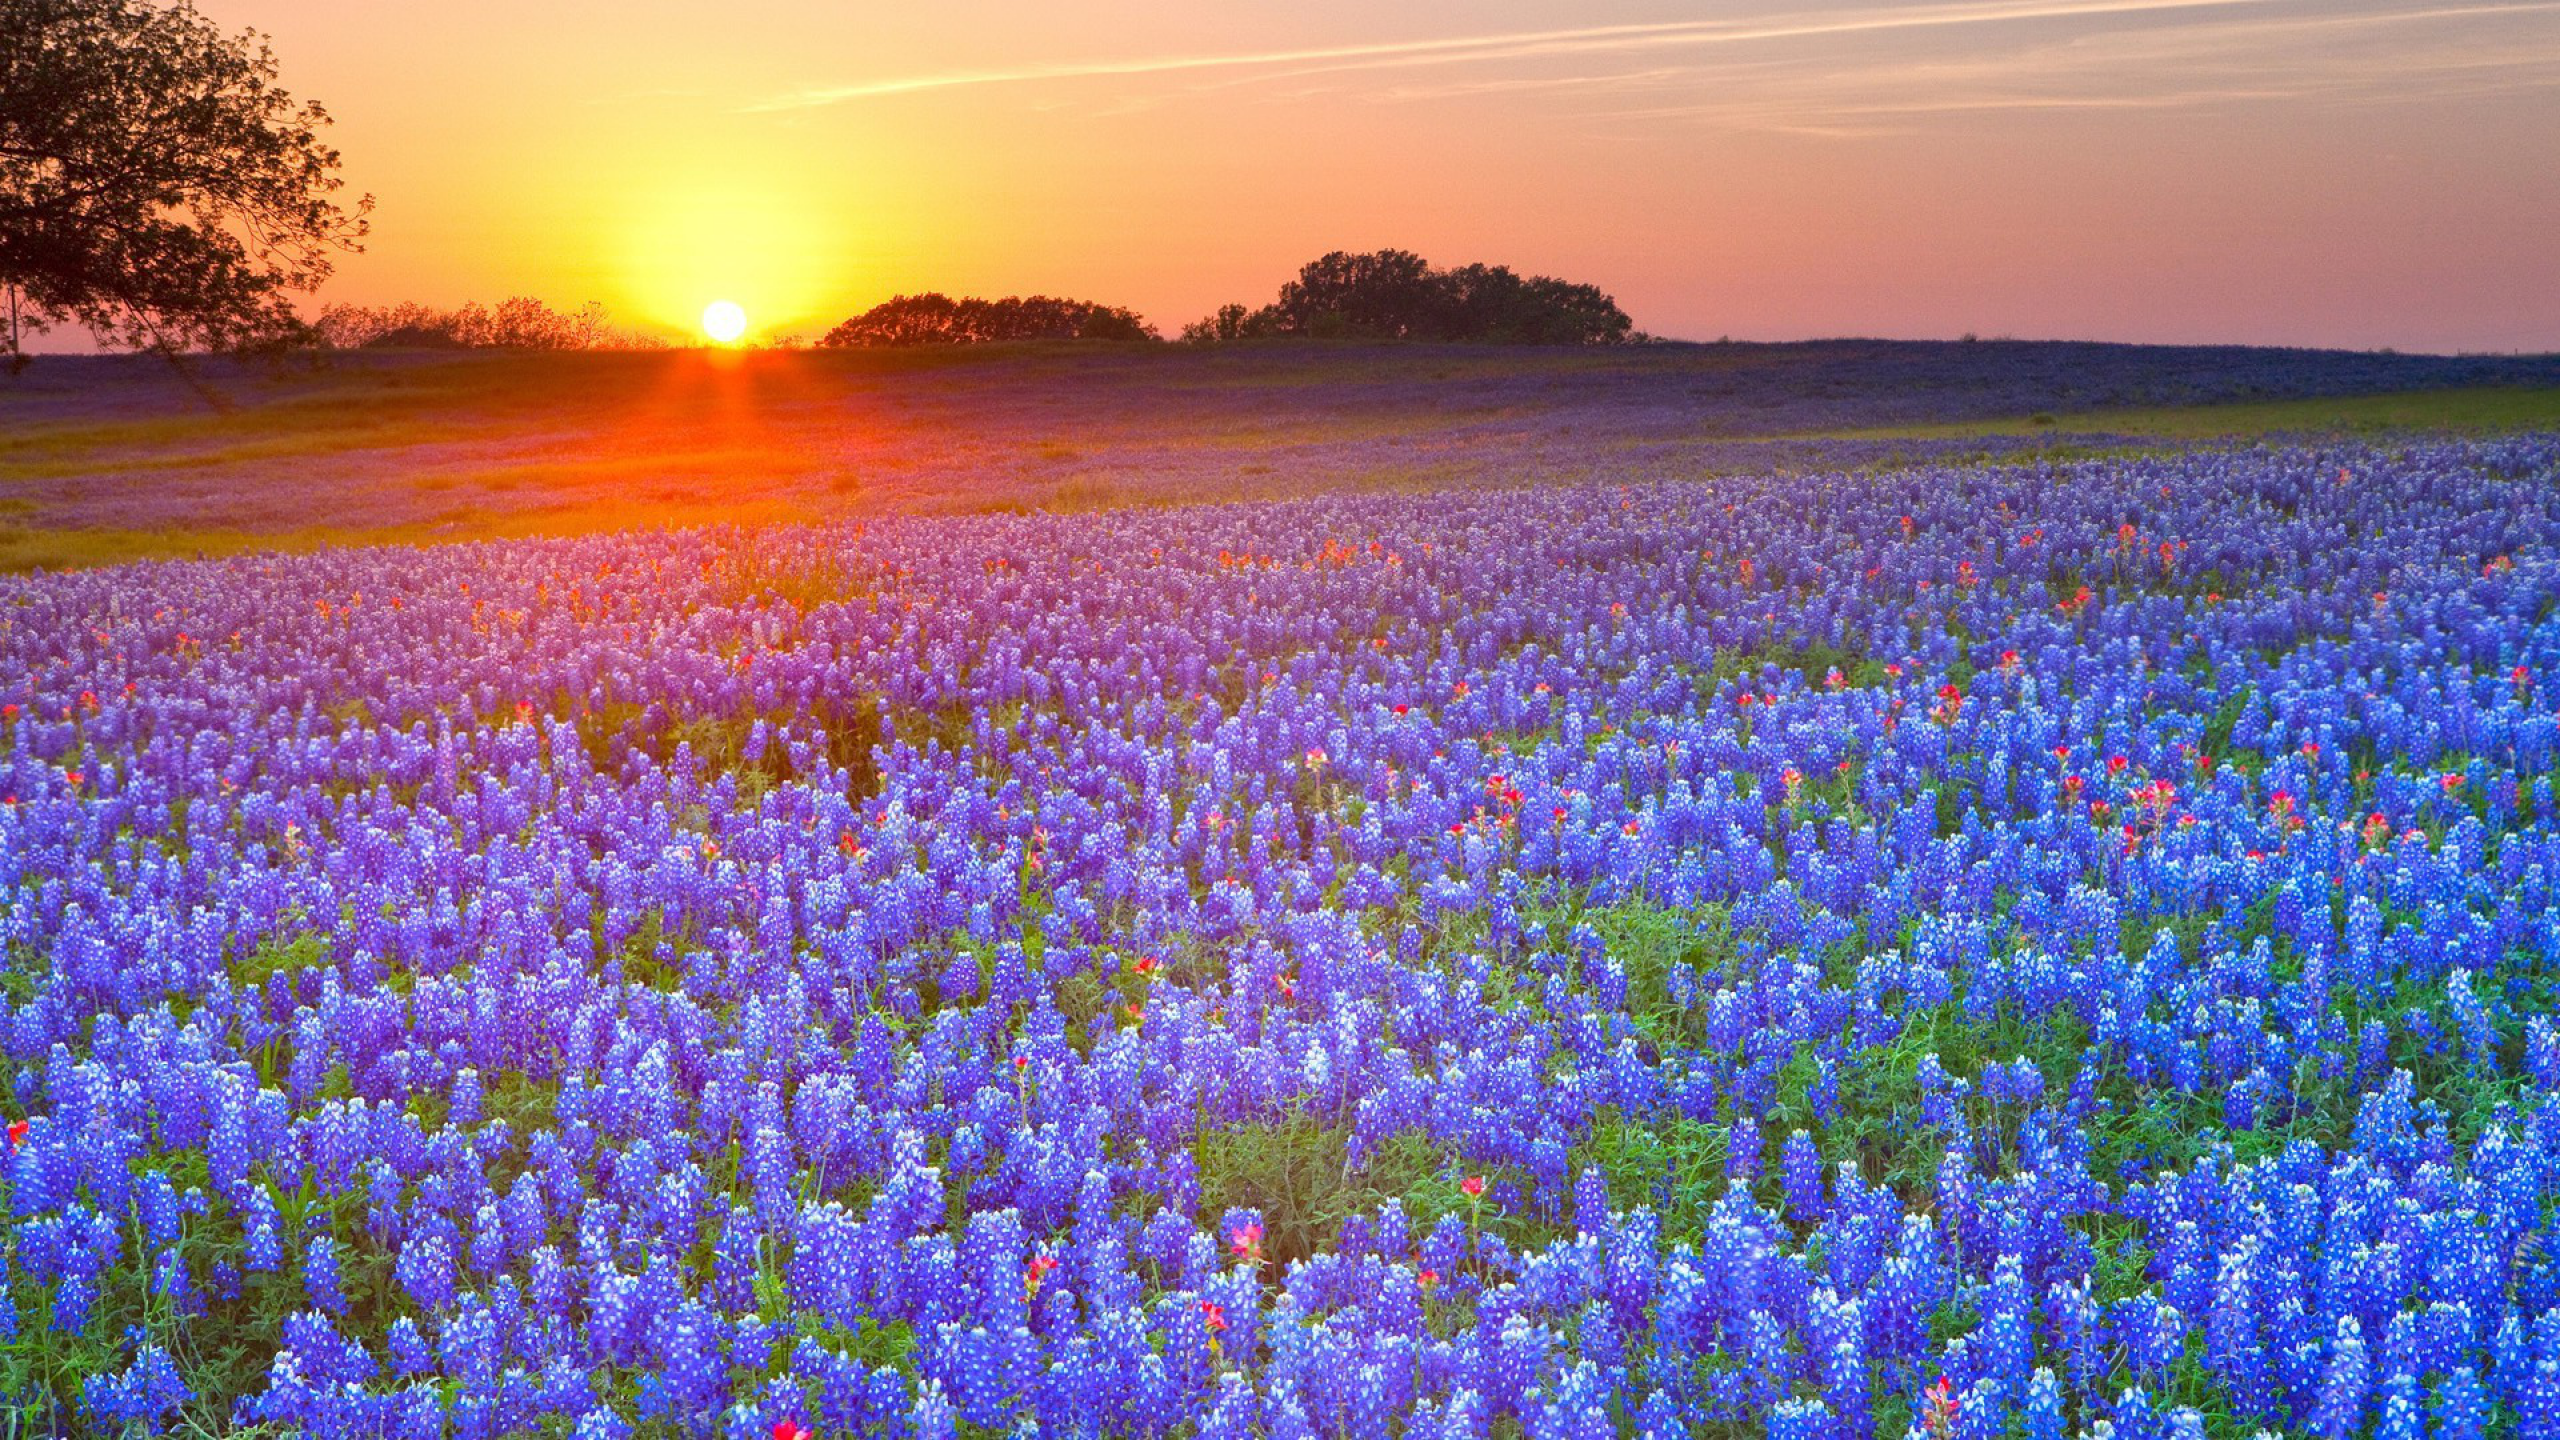 South Texas Computer Wallpapers, Desktop Backgrounds | 2560x1440 | ID ...